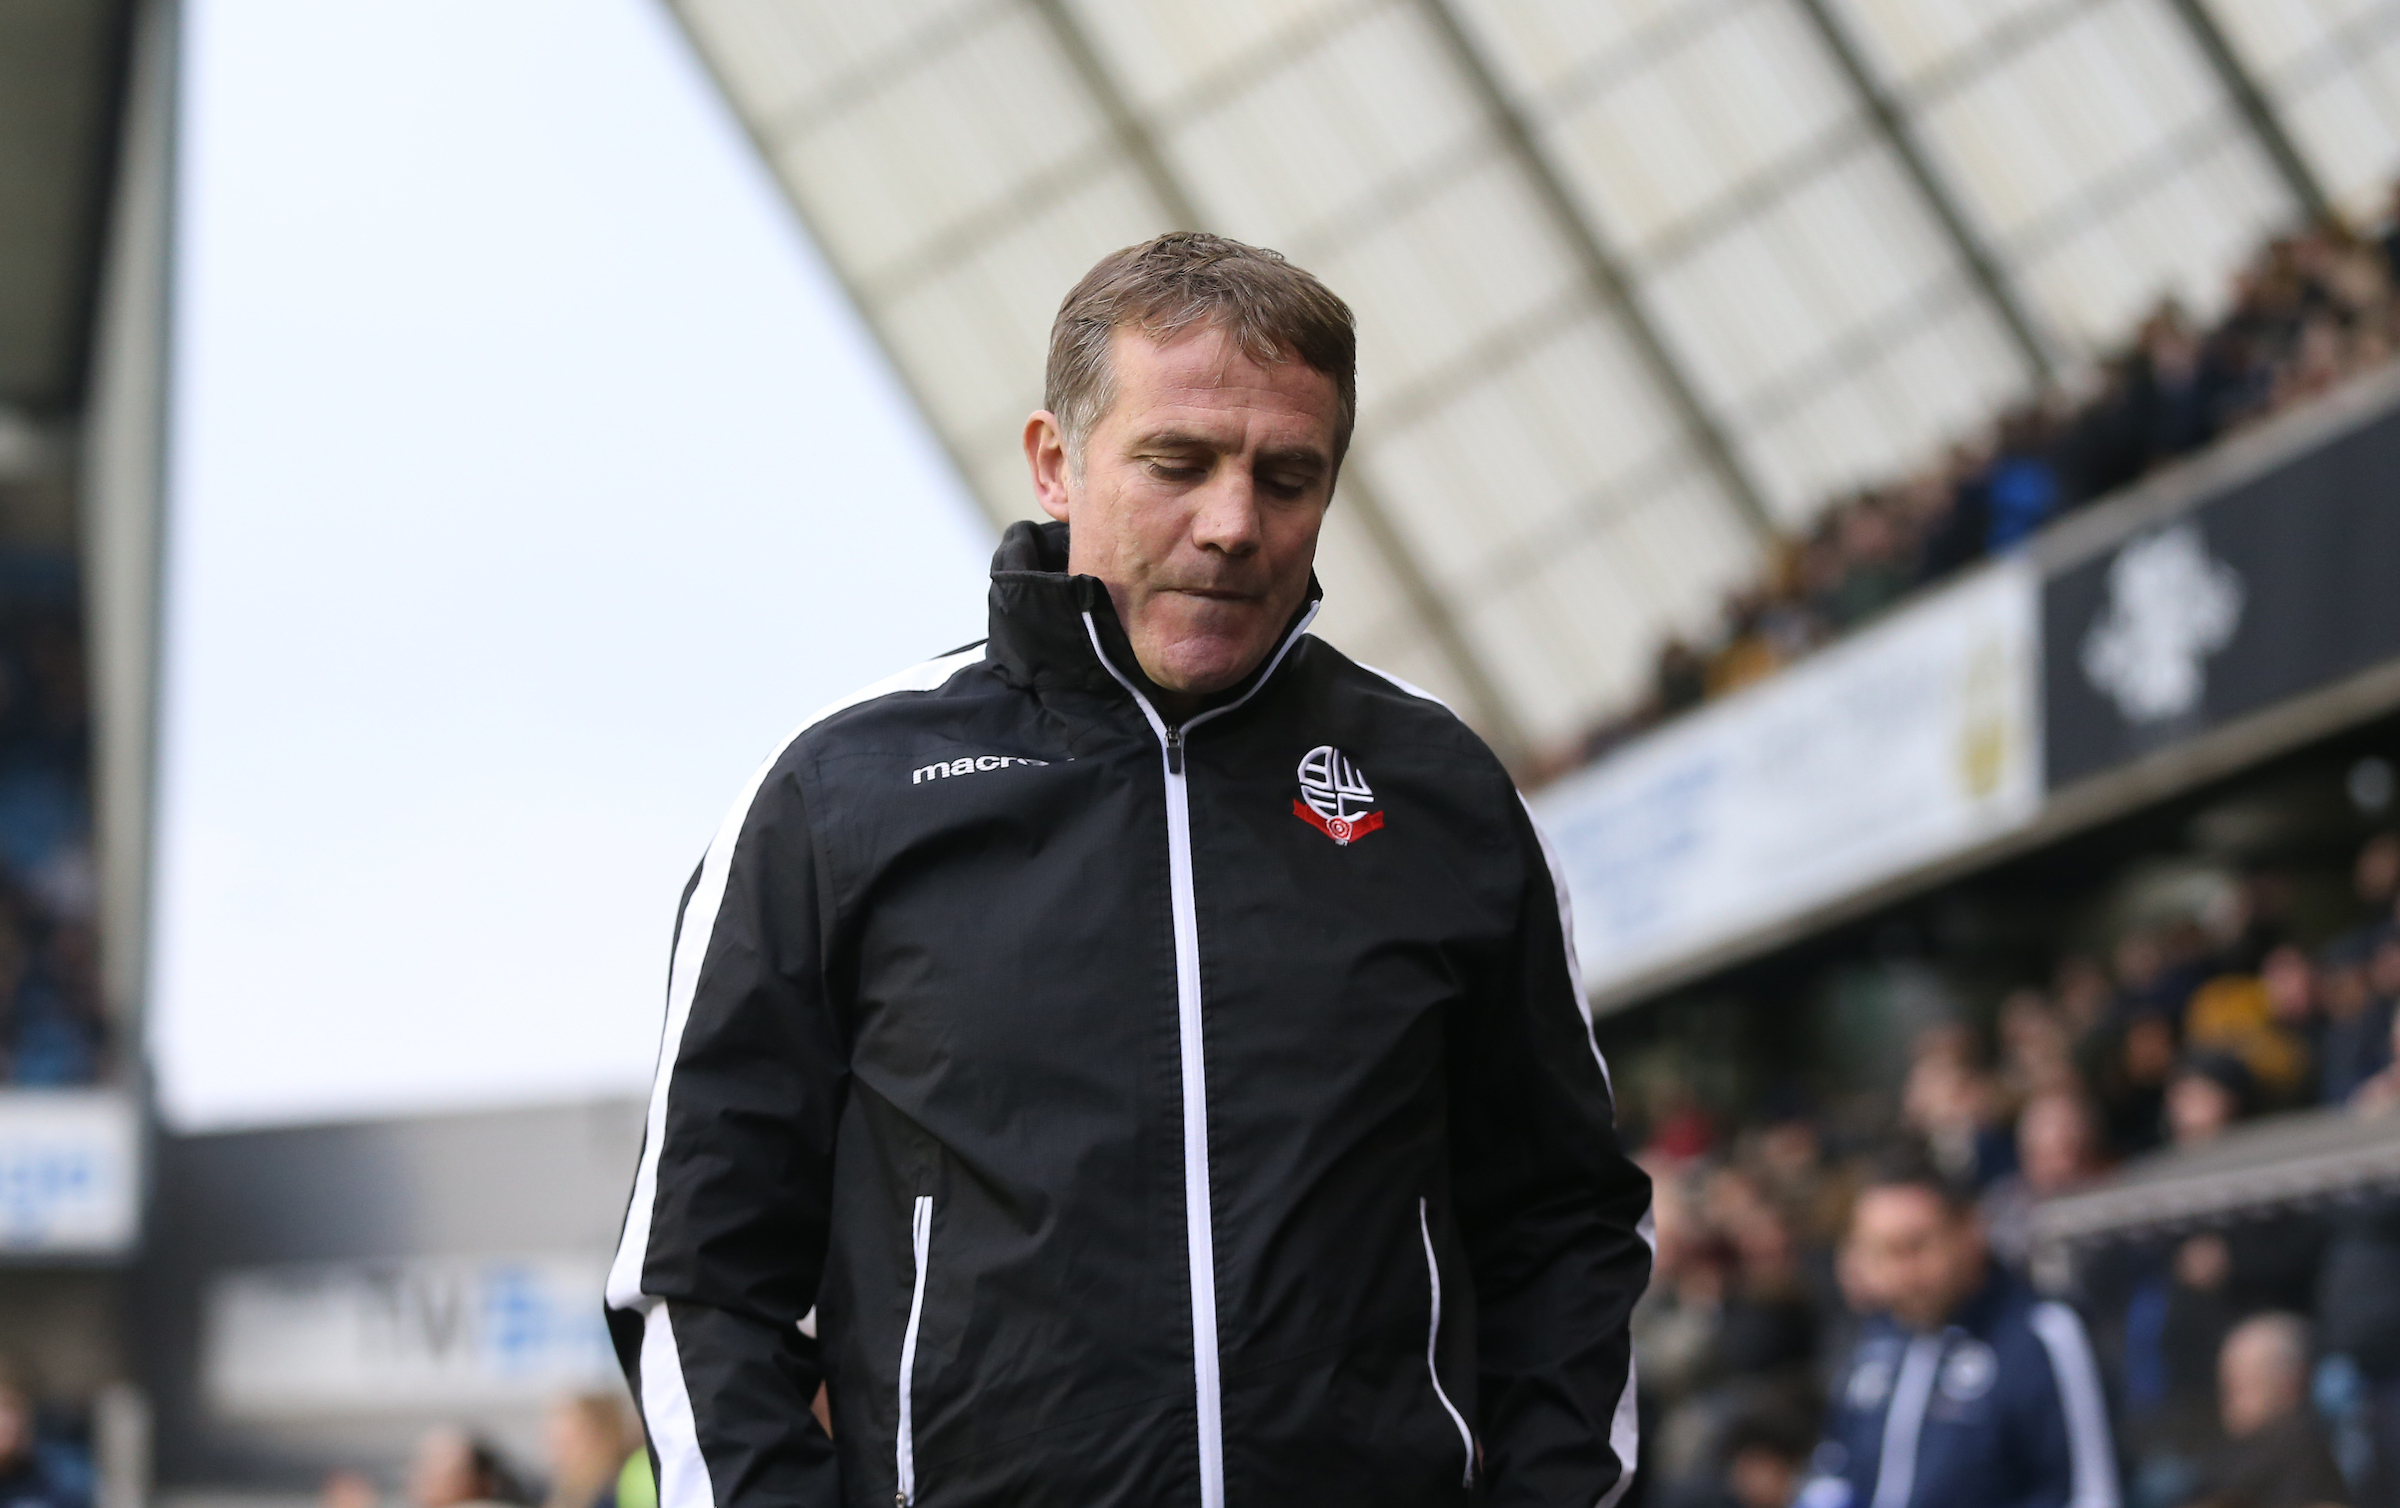 Phil Parkinson has not been paid the bonus money for keeping Wanderers in the Championship, it has been revealed